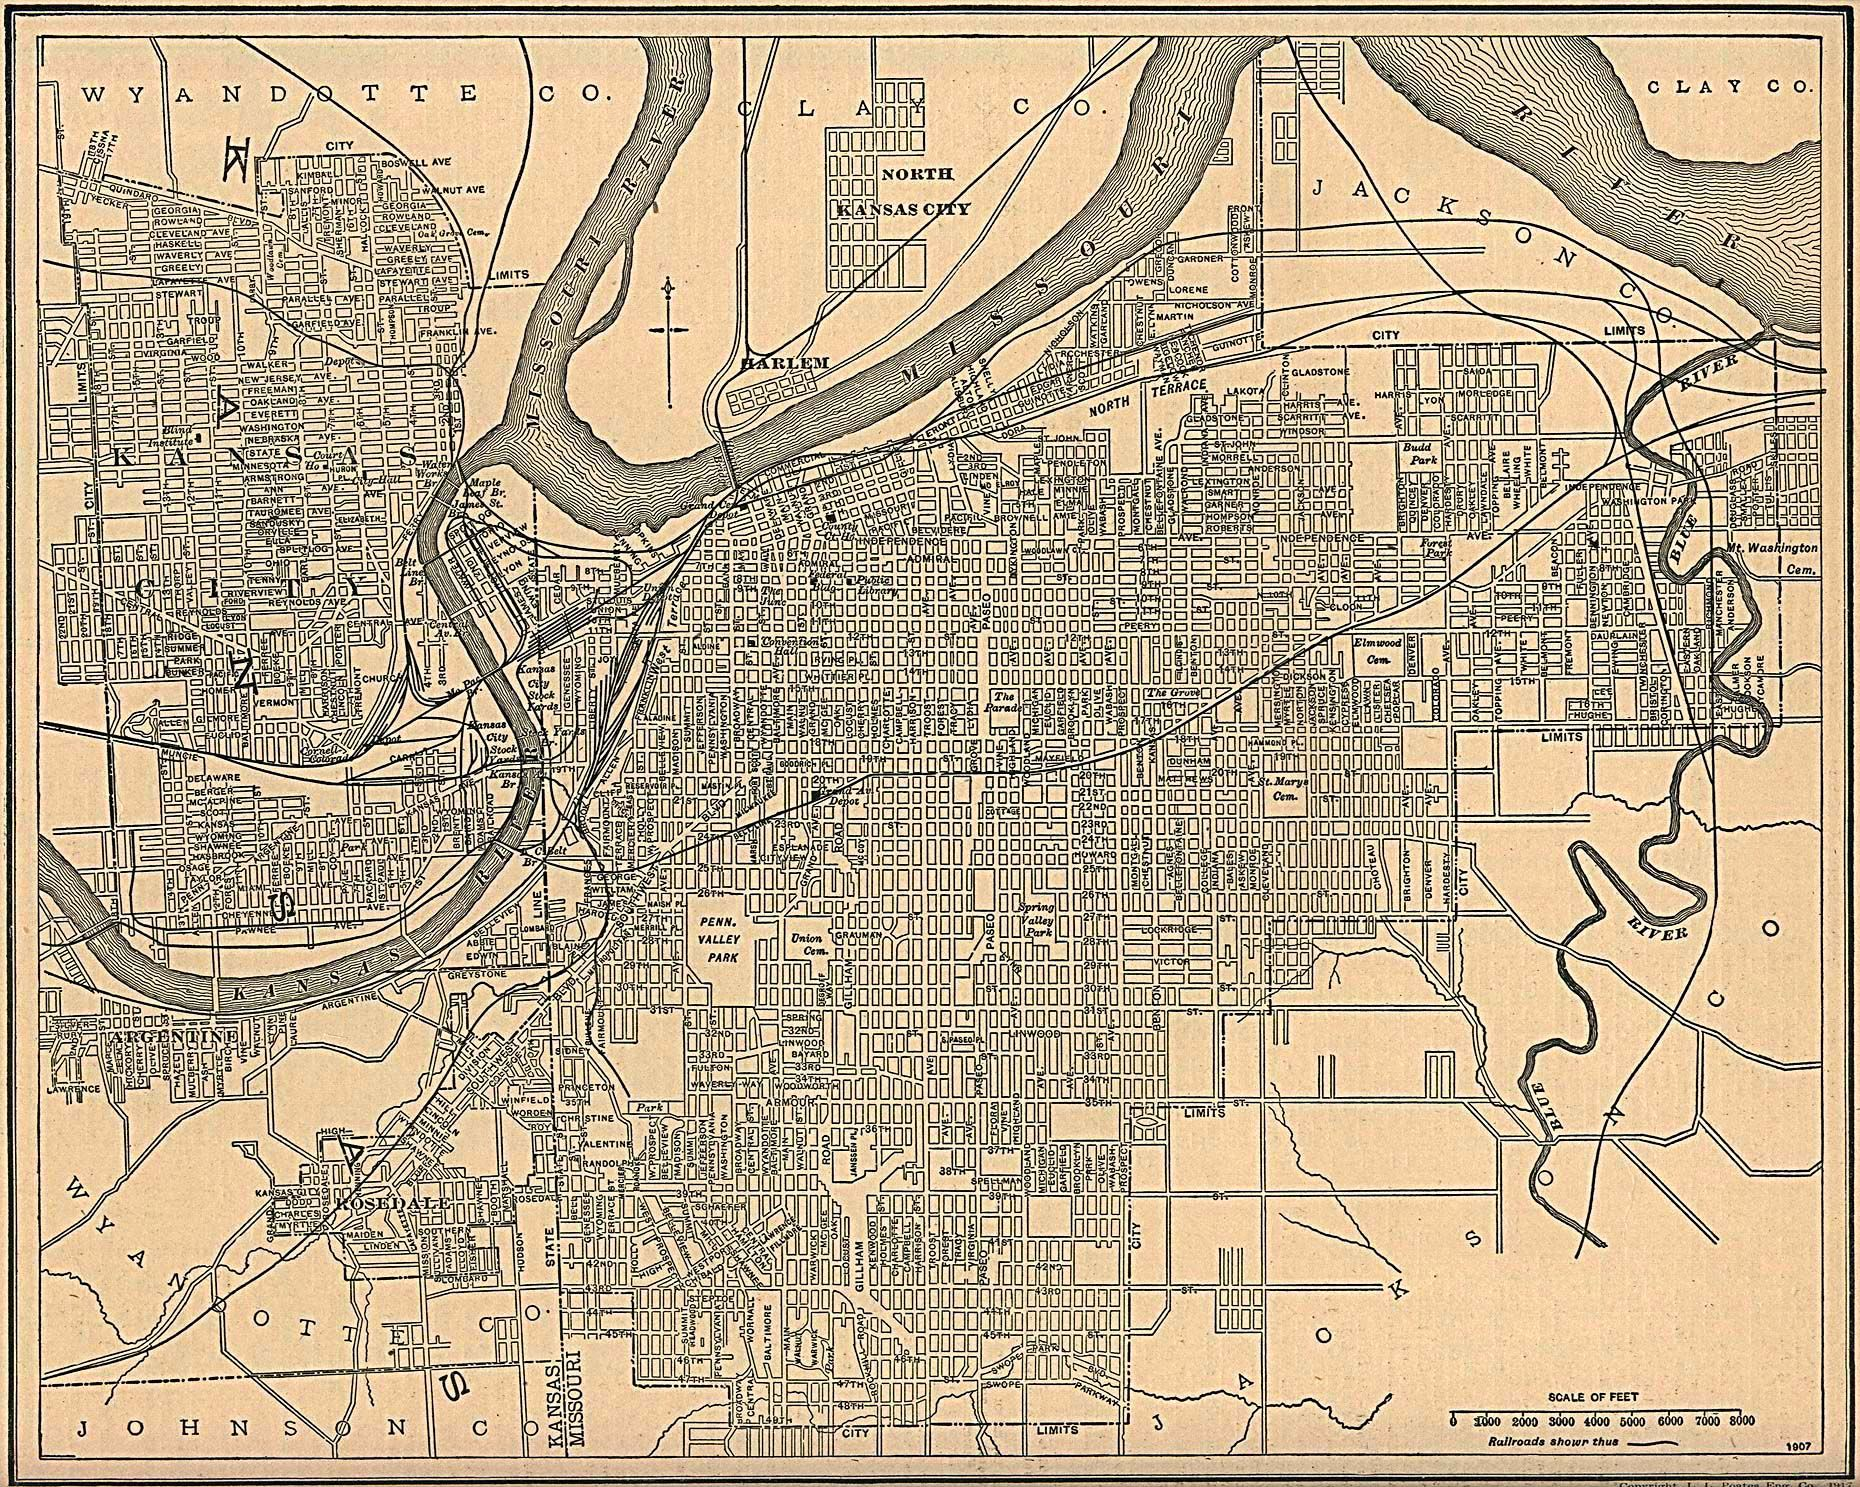 Best Kansas City History Maps Images On Pinterest - Nyc city map portal